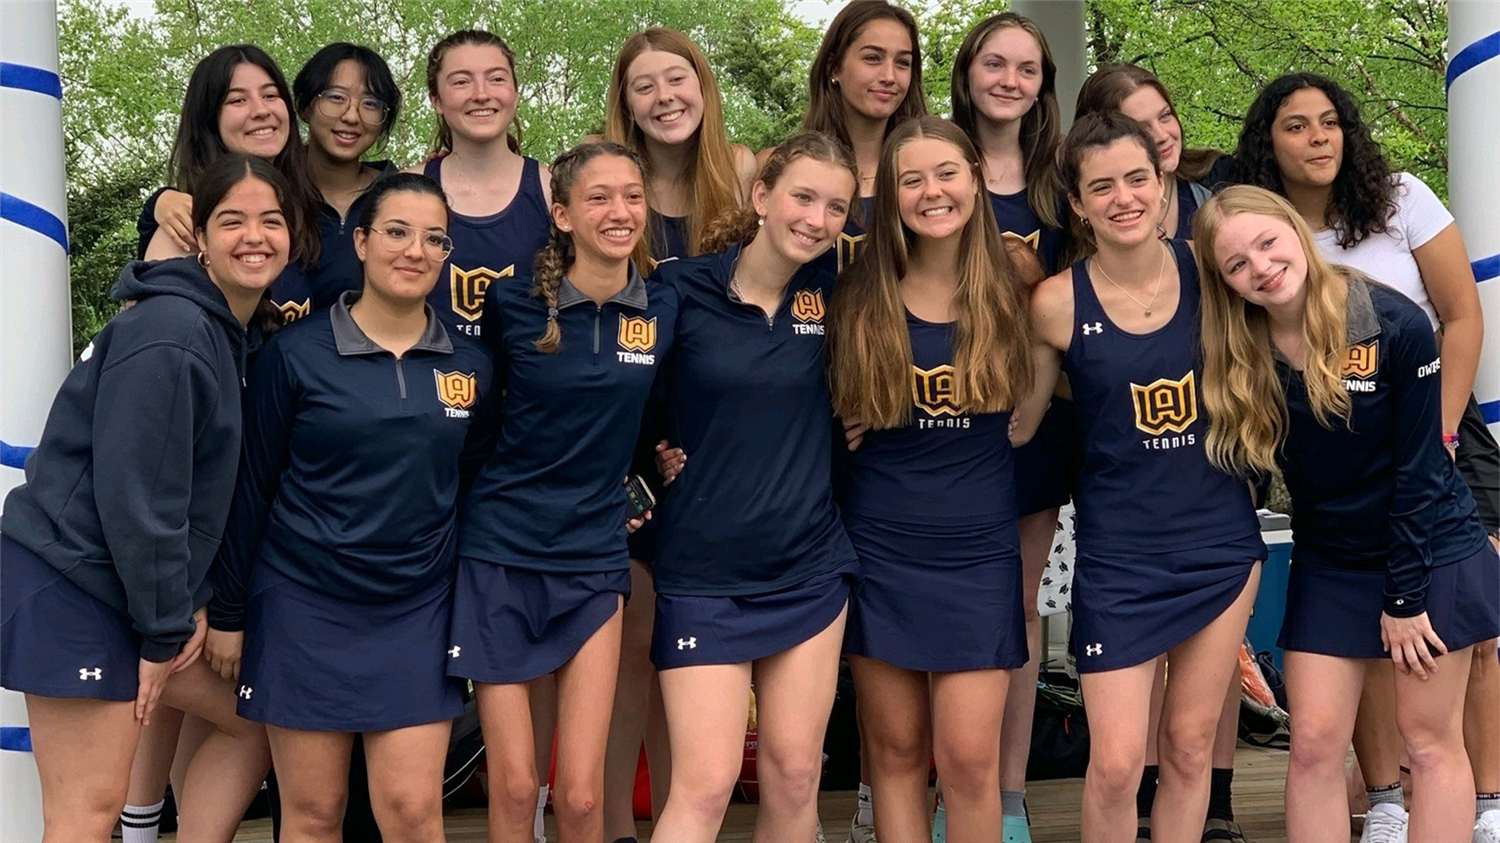 The Woodstock Academy girls tennis team is set to volley against ECC opponents